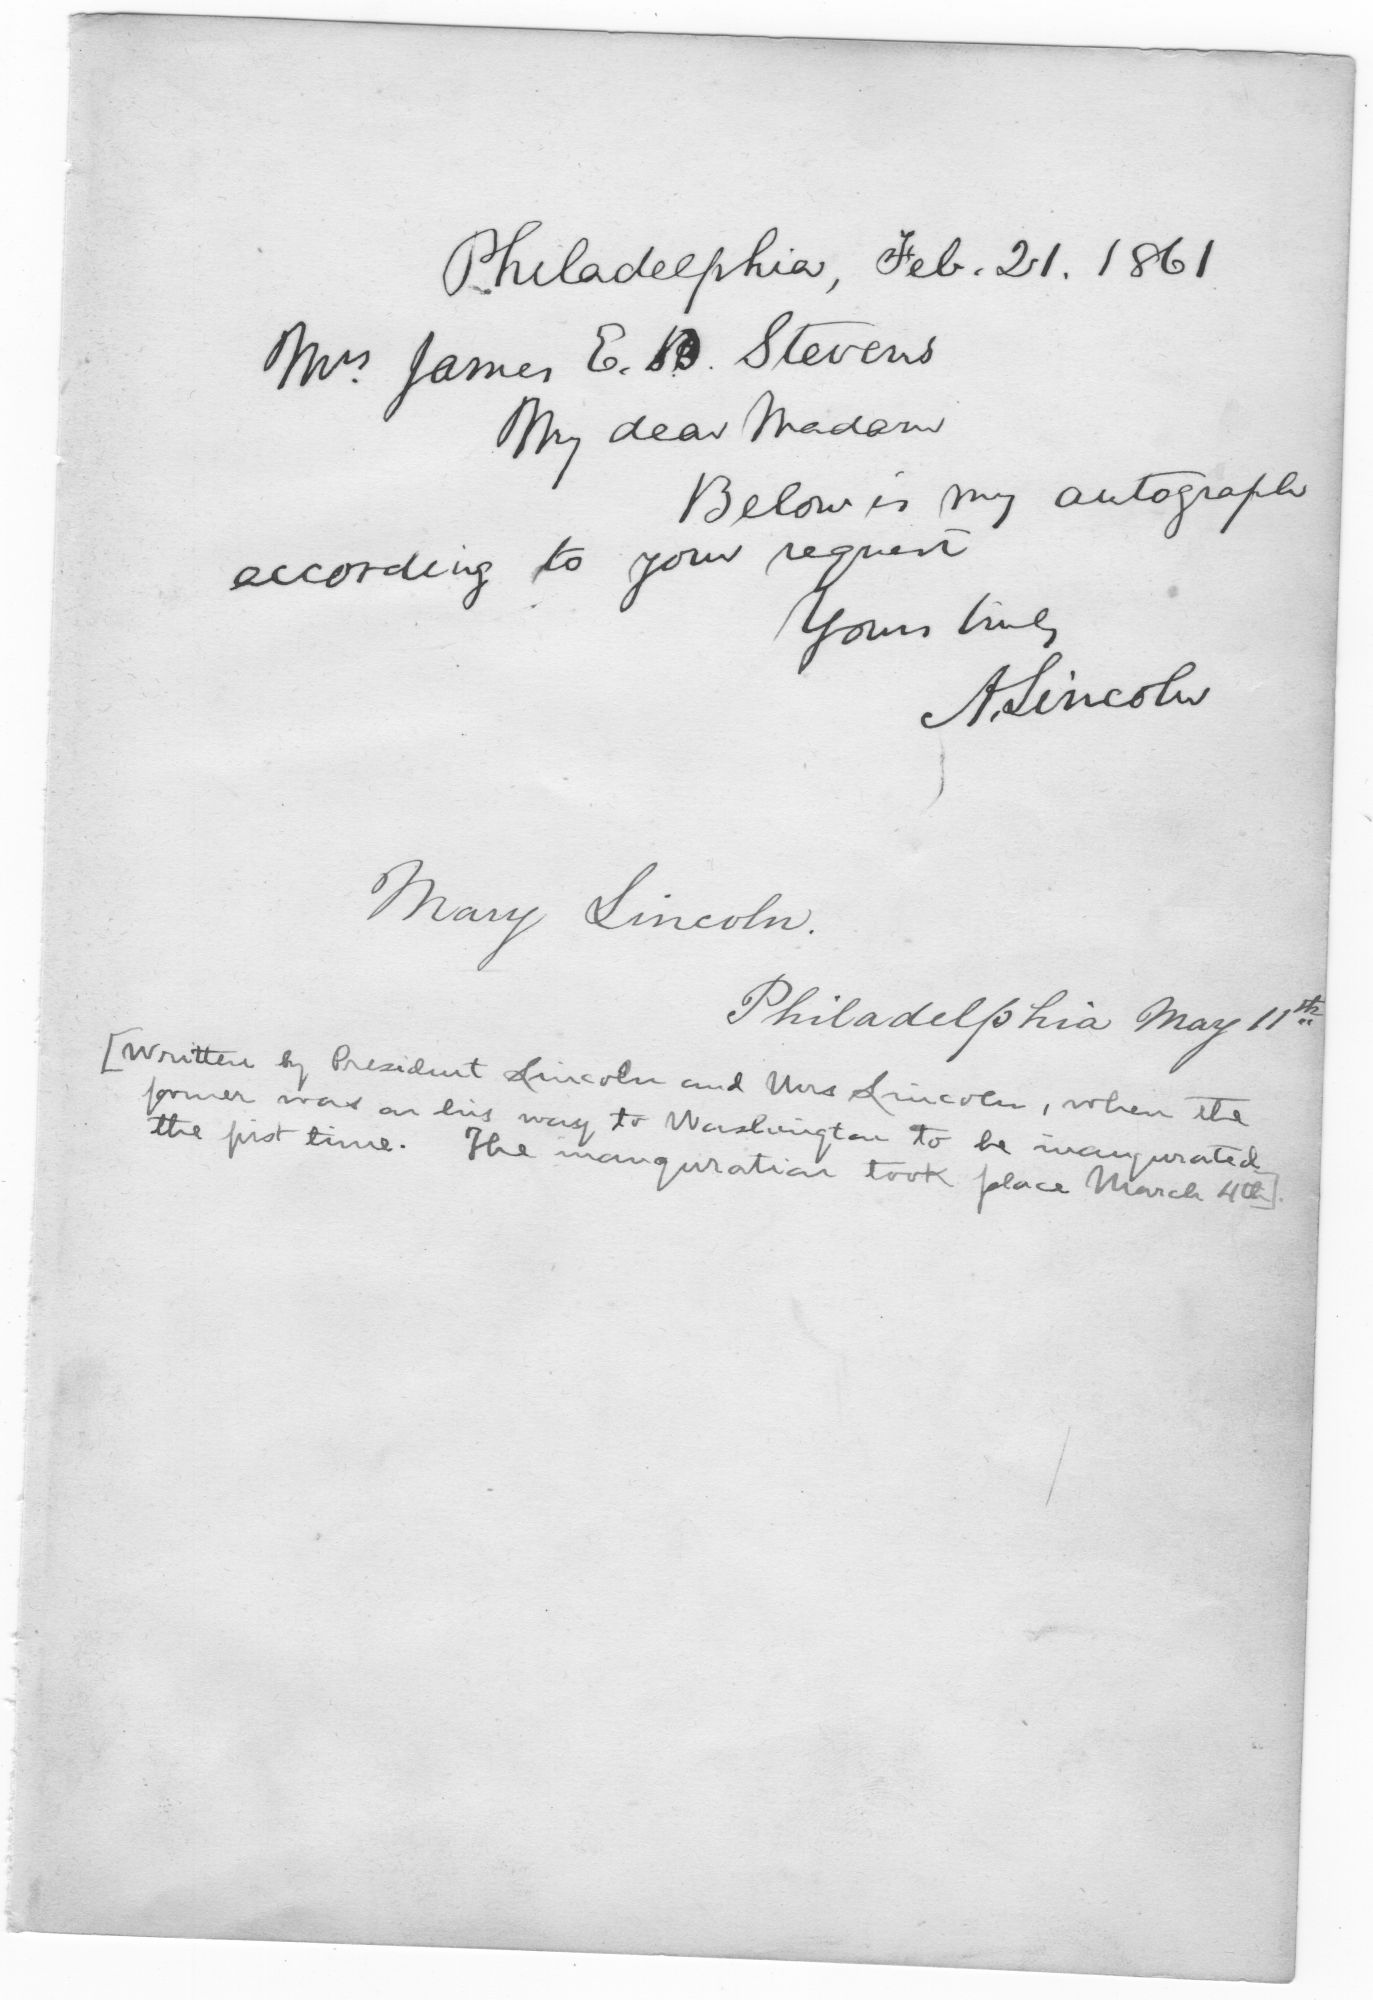 ABRAHAM LINCOLN AUTOGRAPH NOTE SIGNED WITH MARY TODD LINCOLN SIGNATURE. Abraham Lincoln, Mary Todd Lincoln.